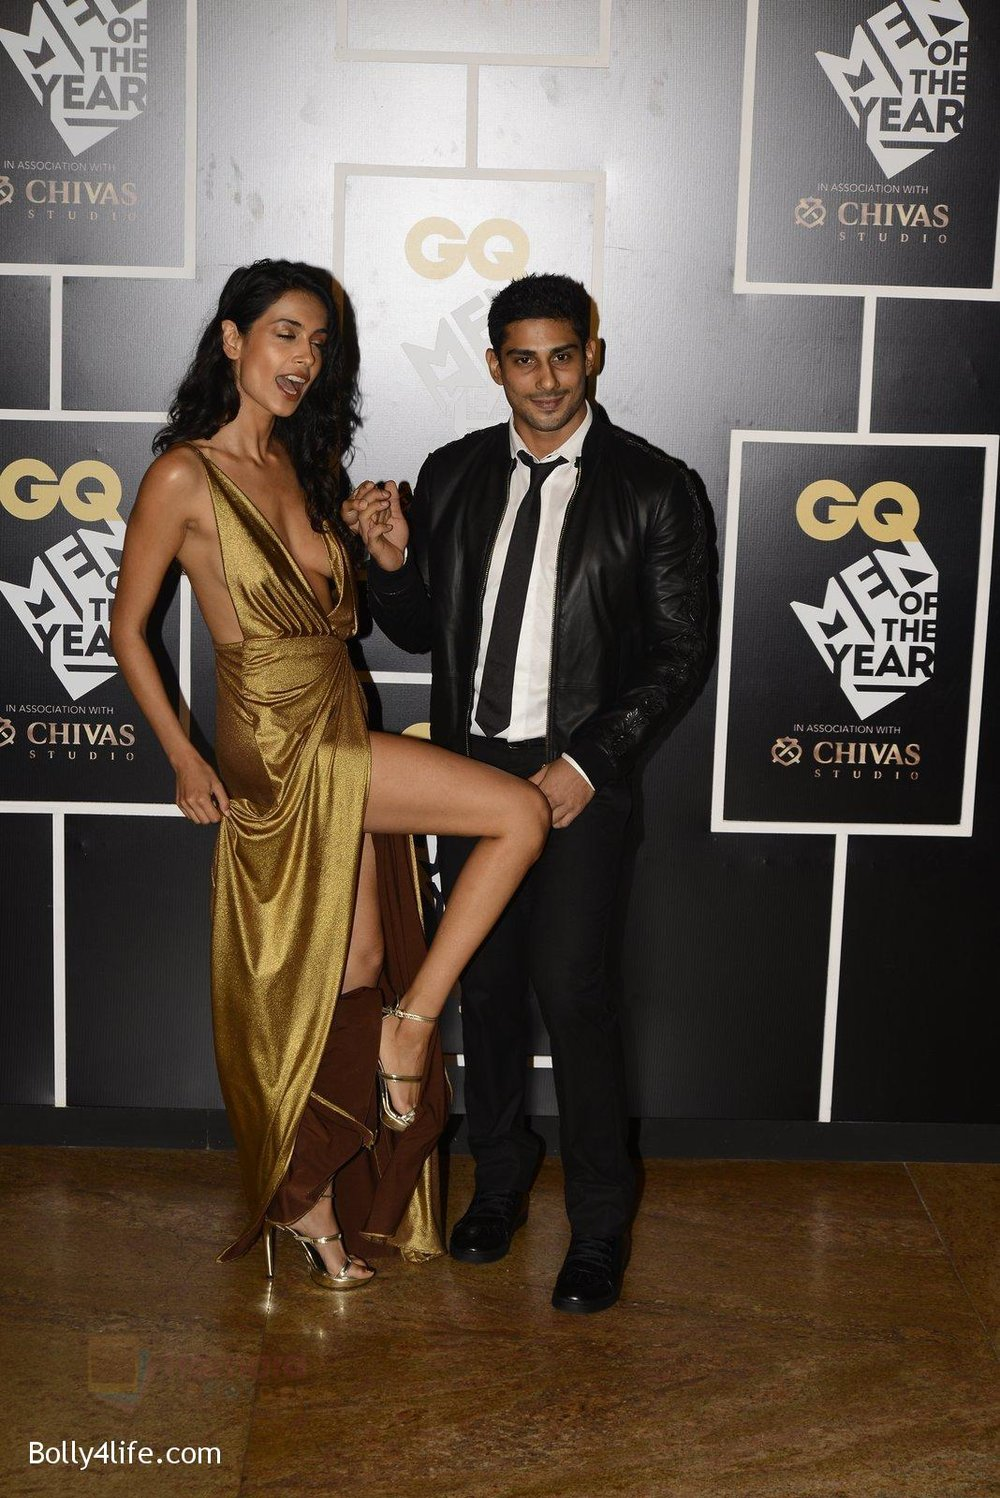 Sarah-Jane-Dias-at-GQ-MEN-OF-THE-YEAR-on-27th-Sept-2016-1105.jpg